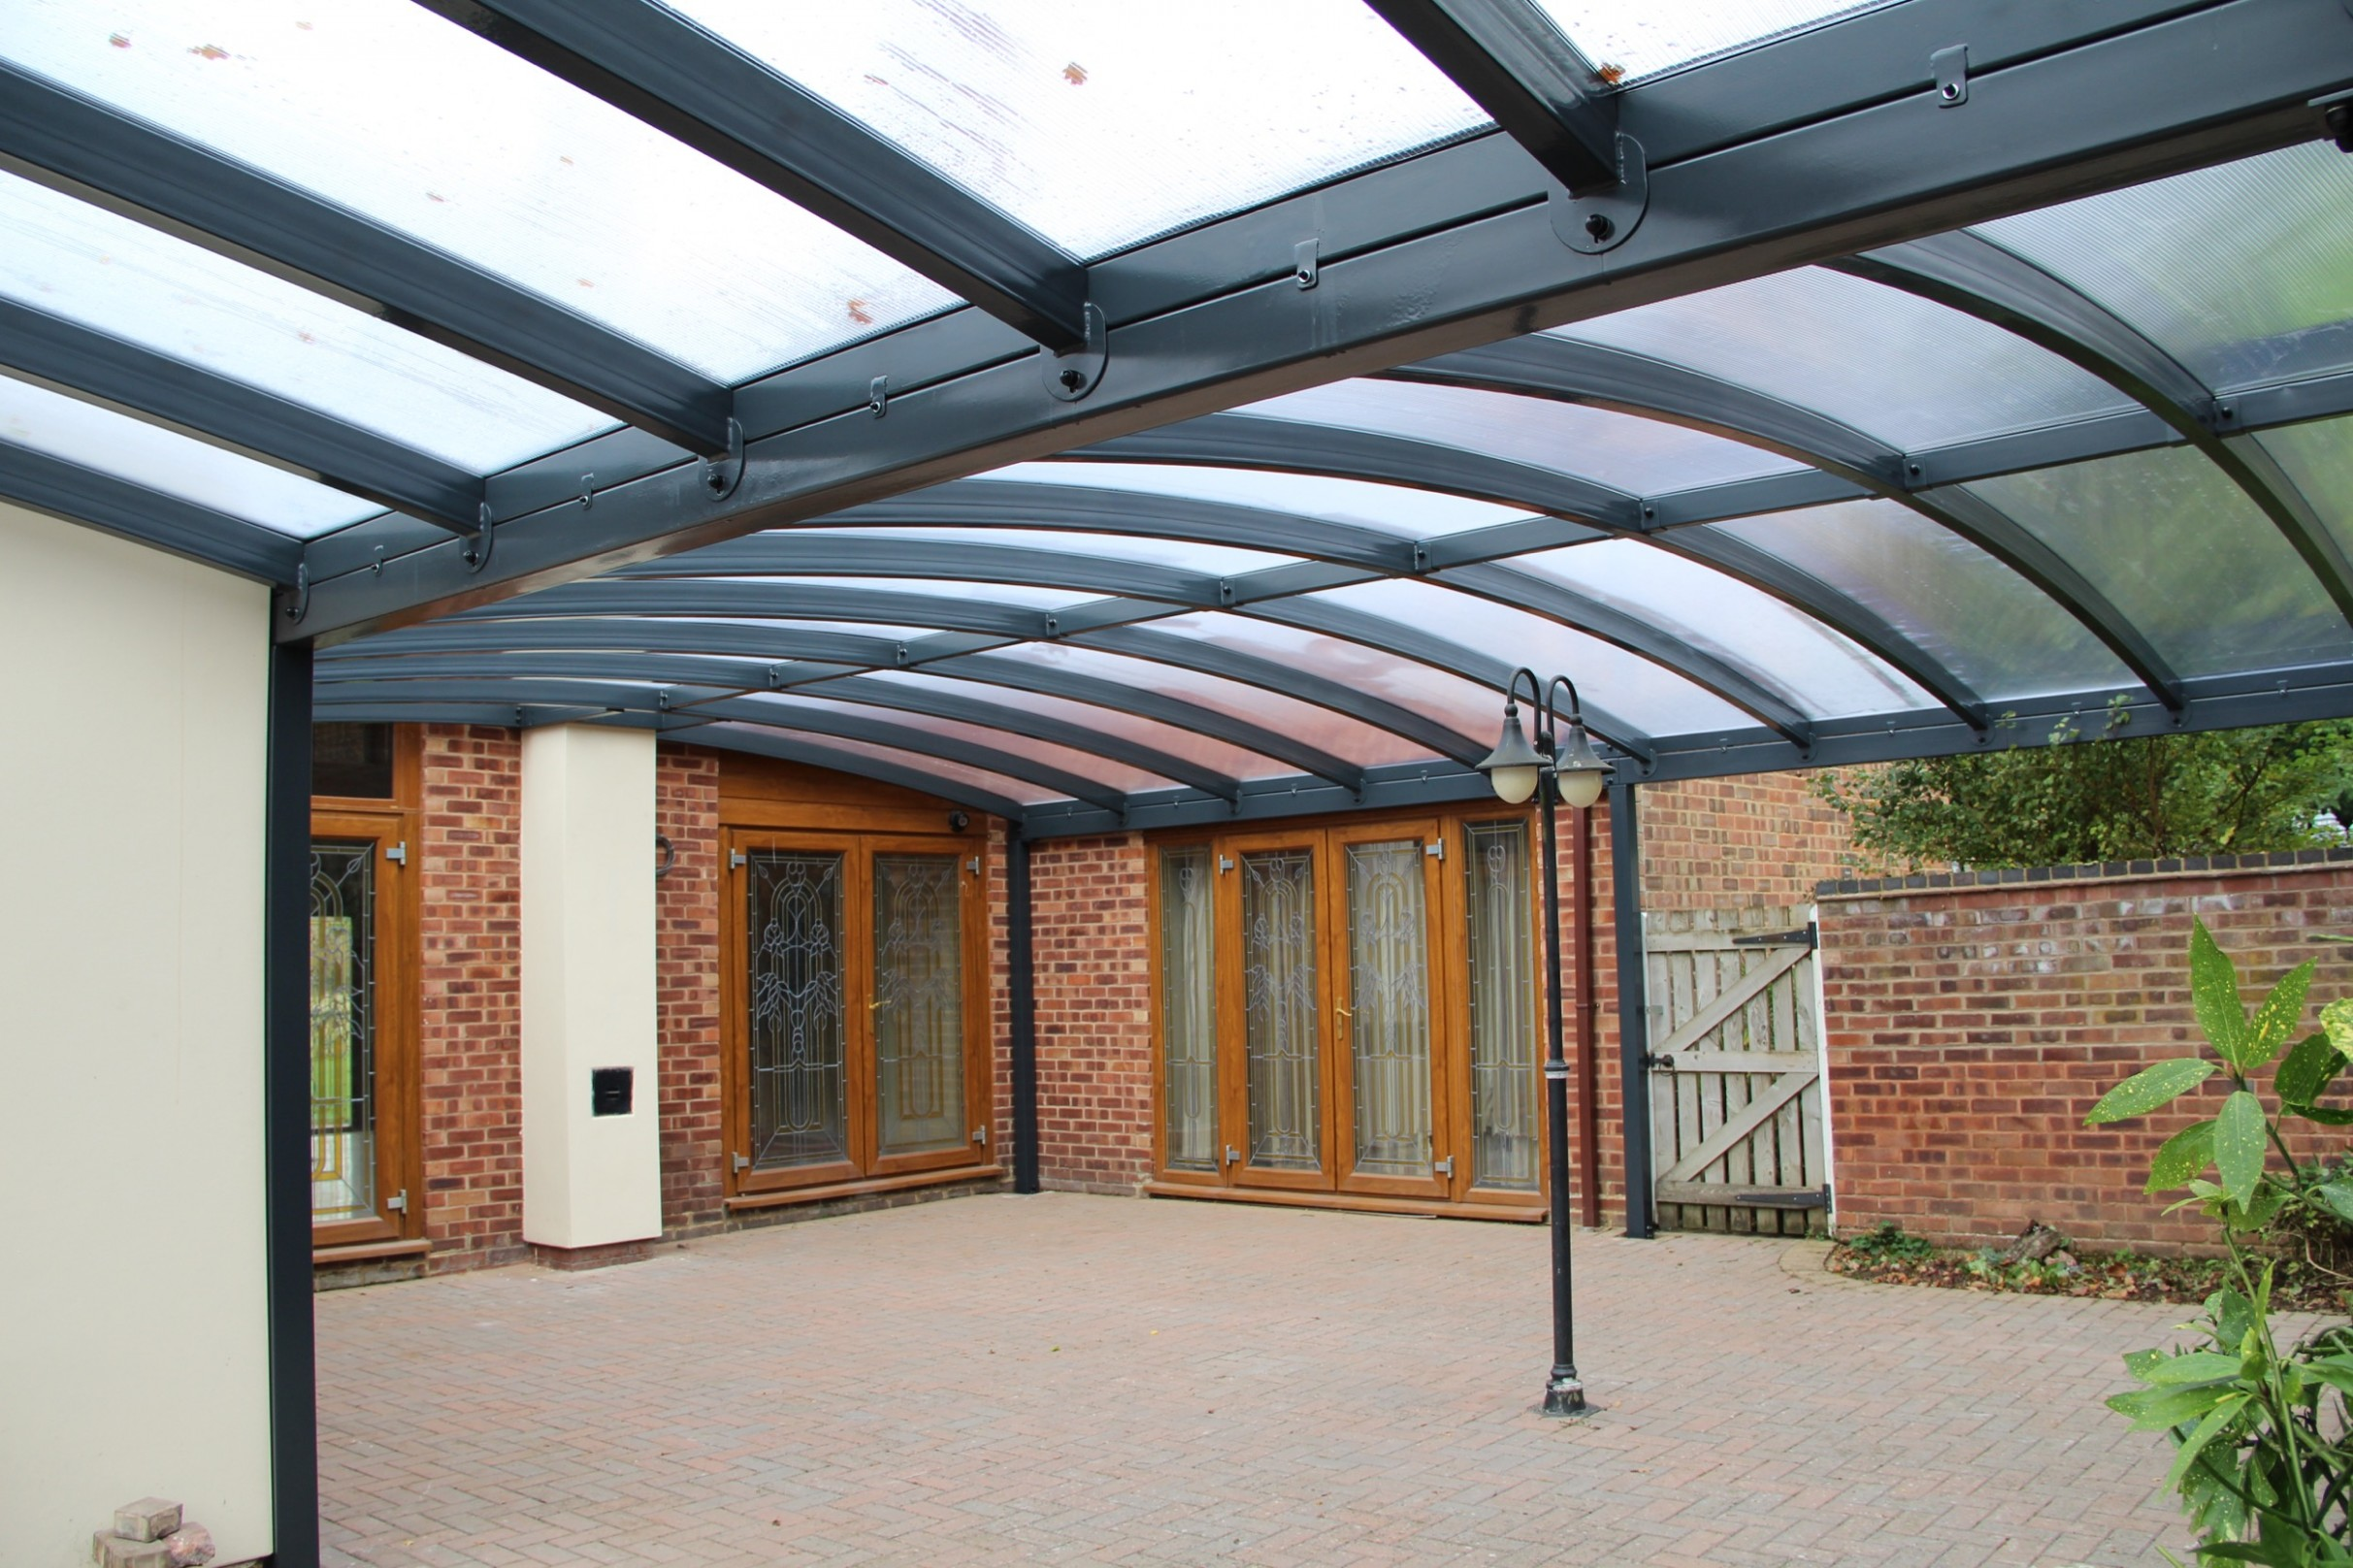 15 Shocking Facts About Carport Canopy | carport canopy